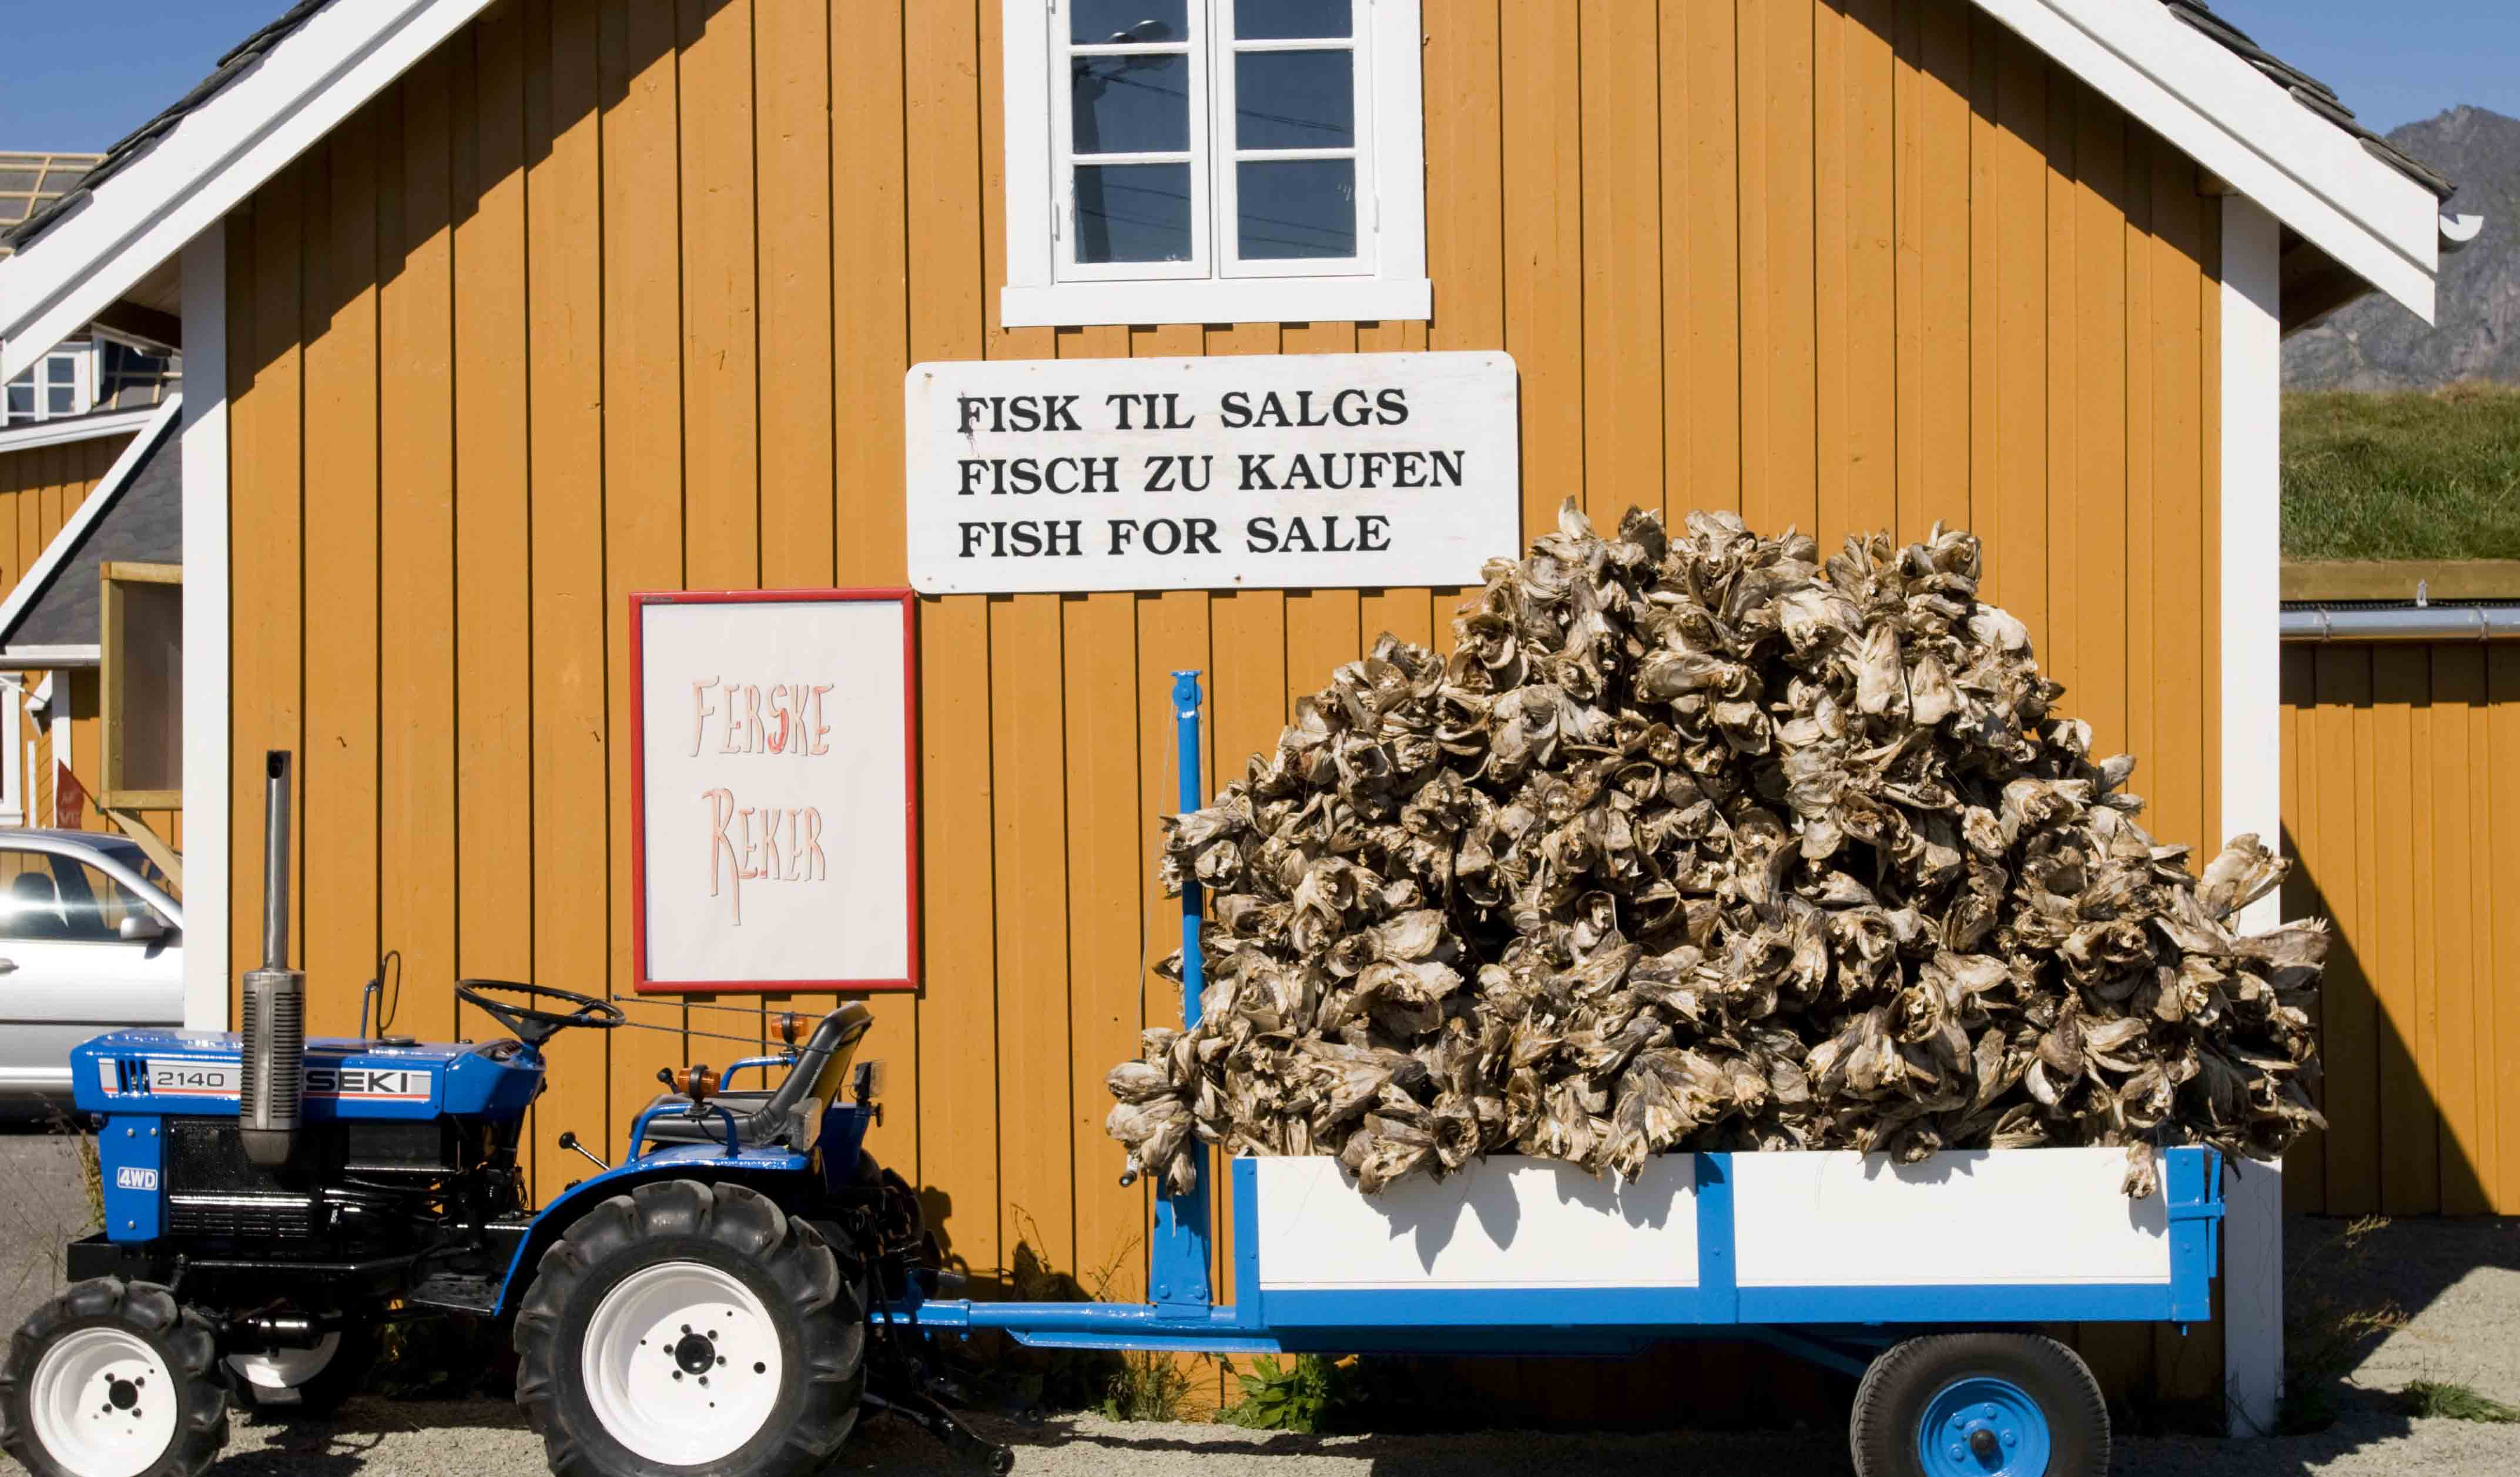 Stockfish for sale from a tractor fan, Lofoten.